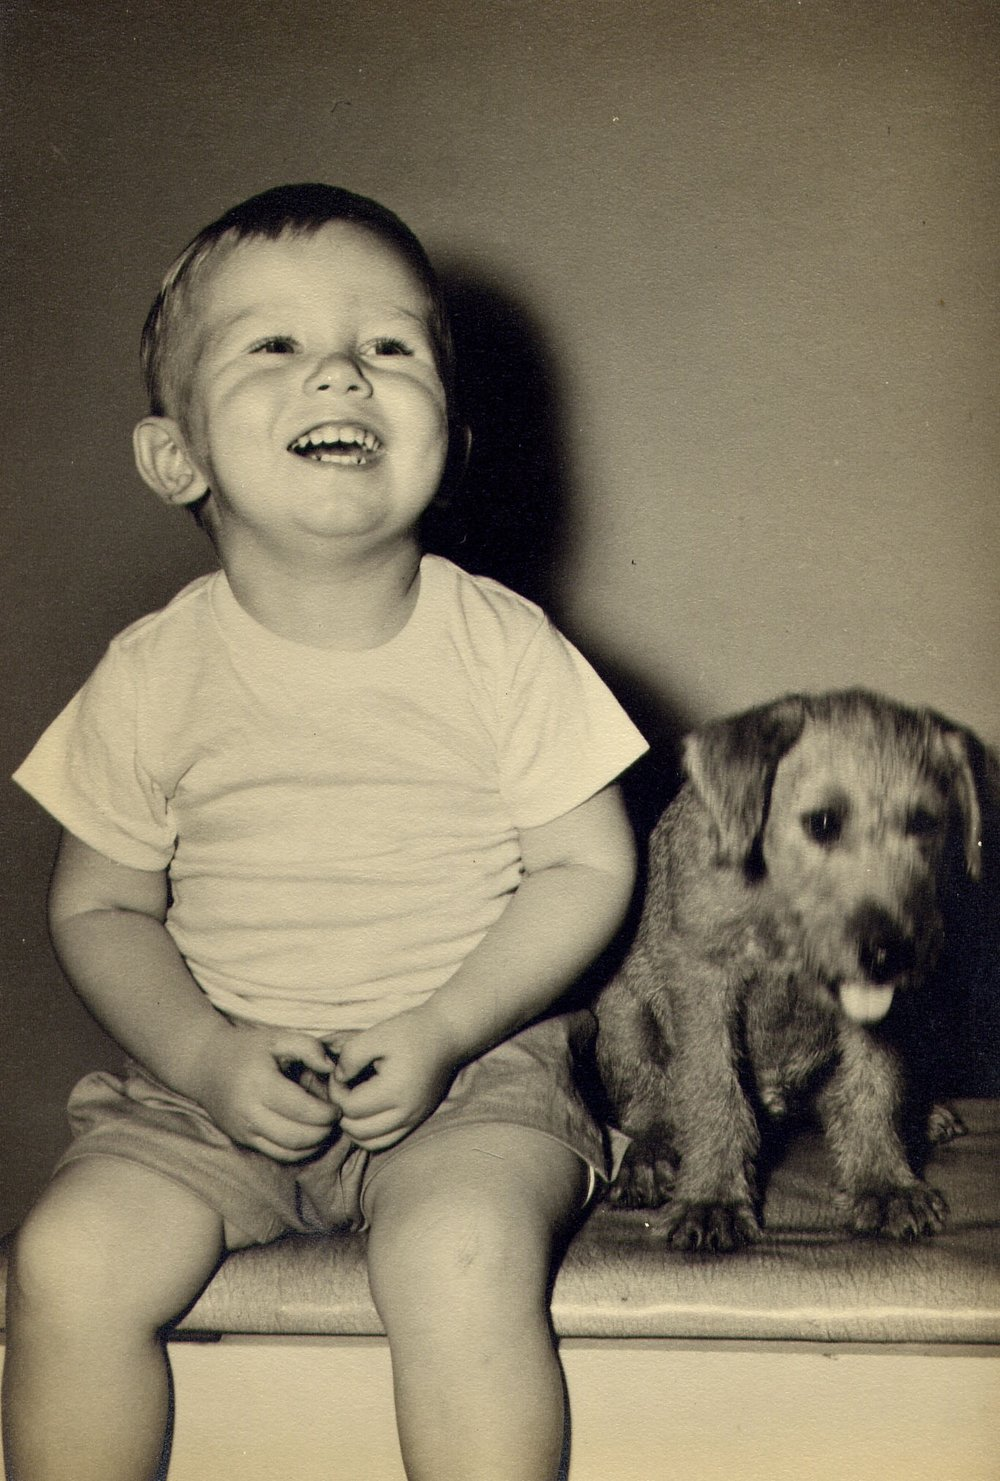 Lloyd & first dog